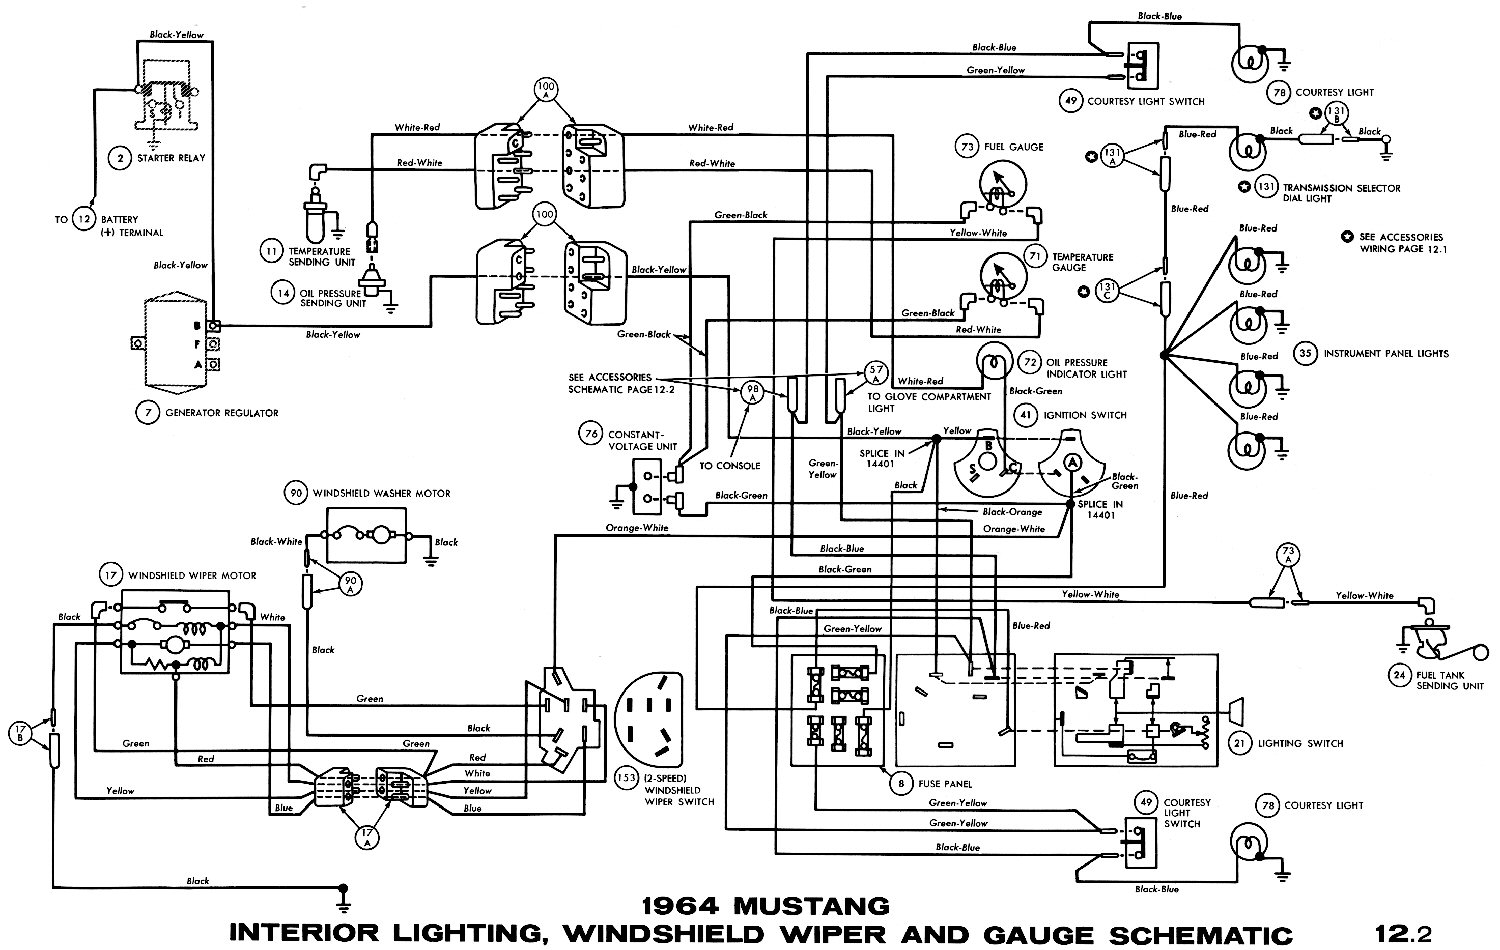 1964k mustang wiring diagrams mustang engine diagram \u2022 free wiring 2005 ford mustang instrument cluster wiring diagram at readyjetset.co